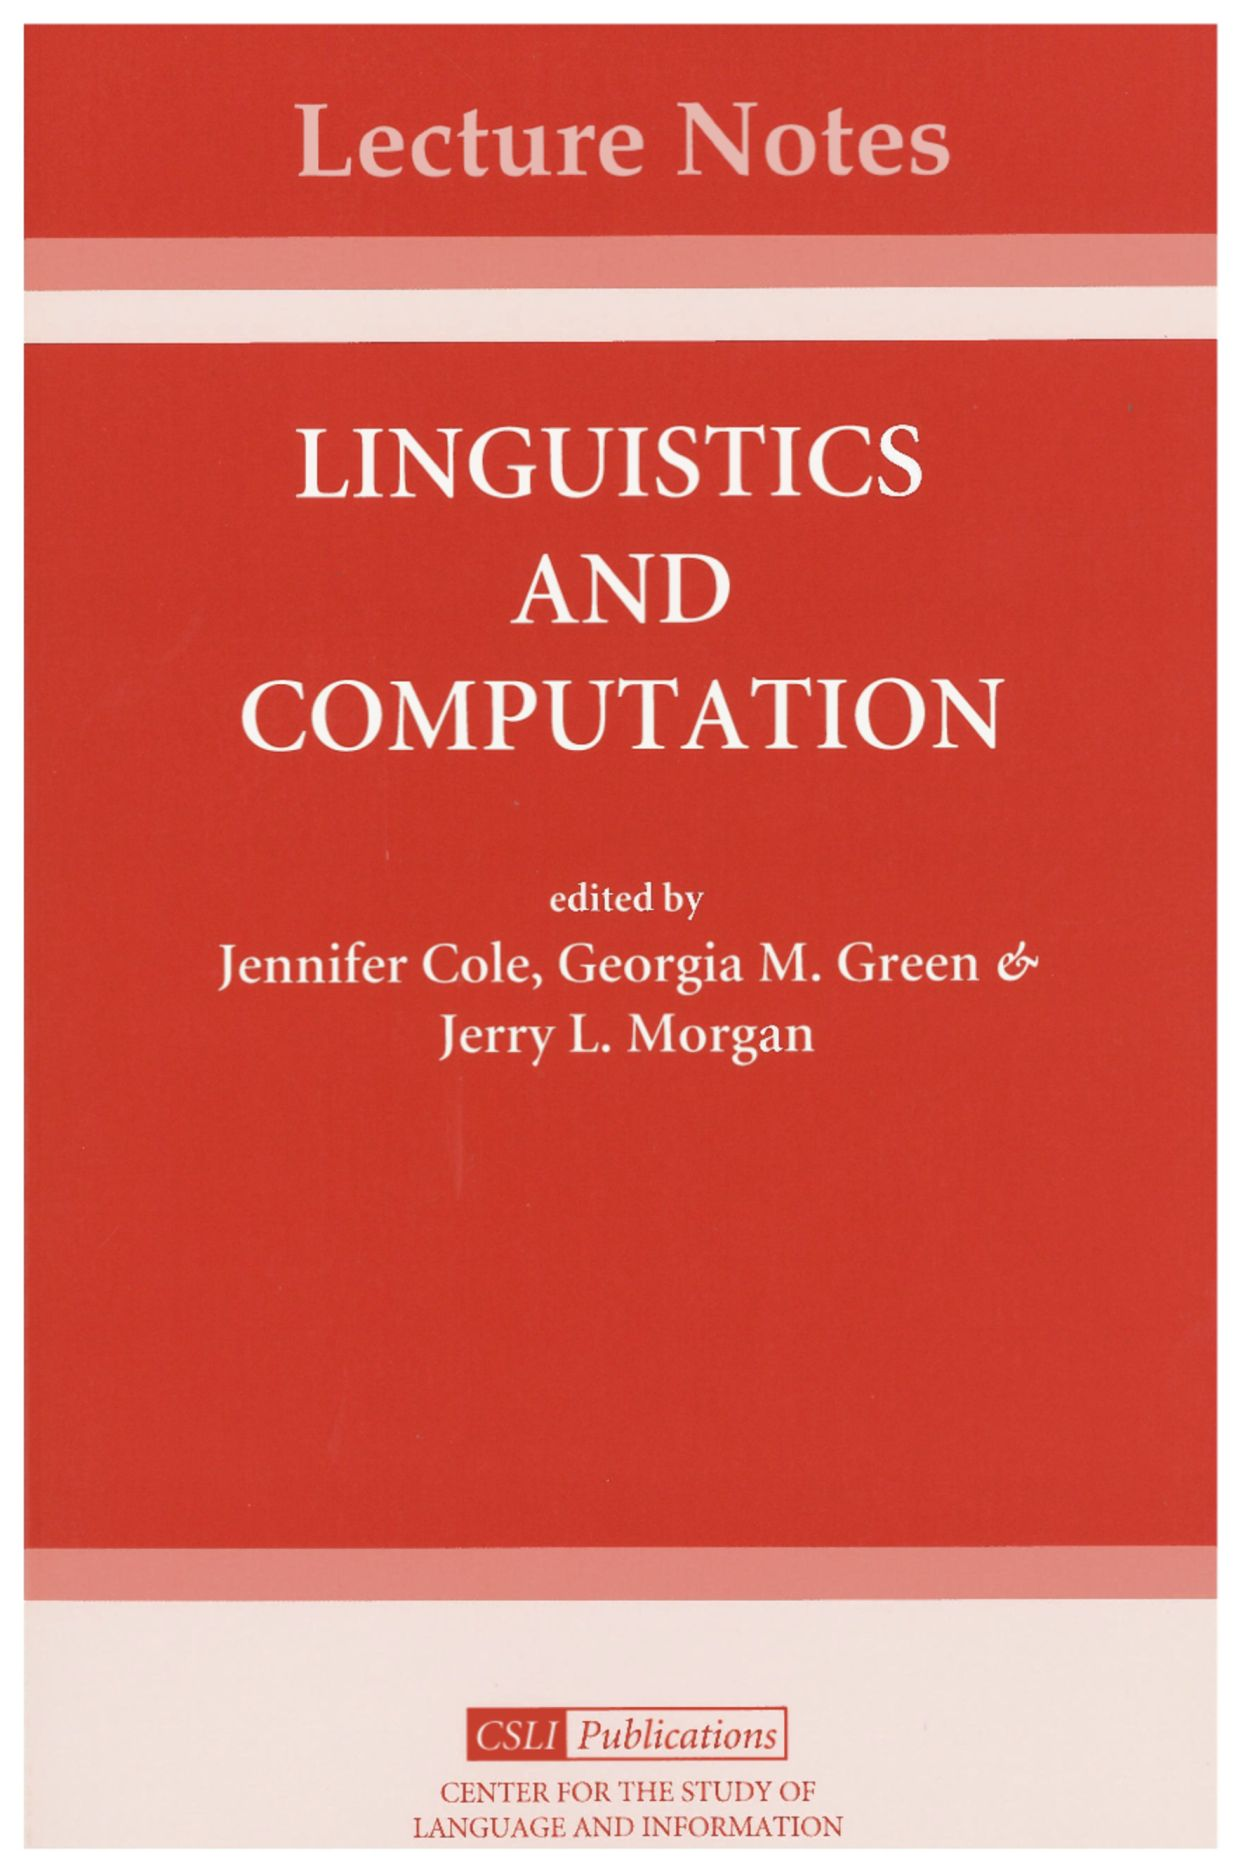 Linguistics and Computation